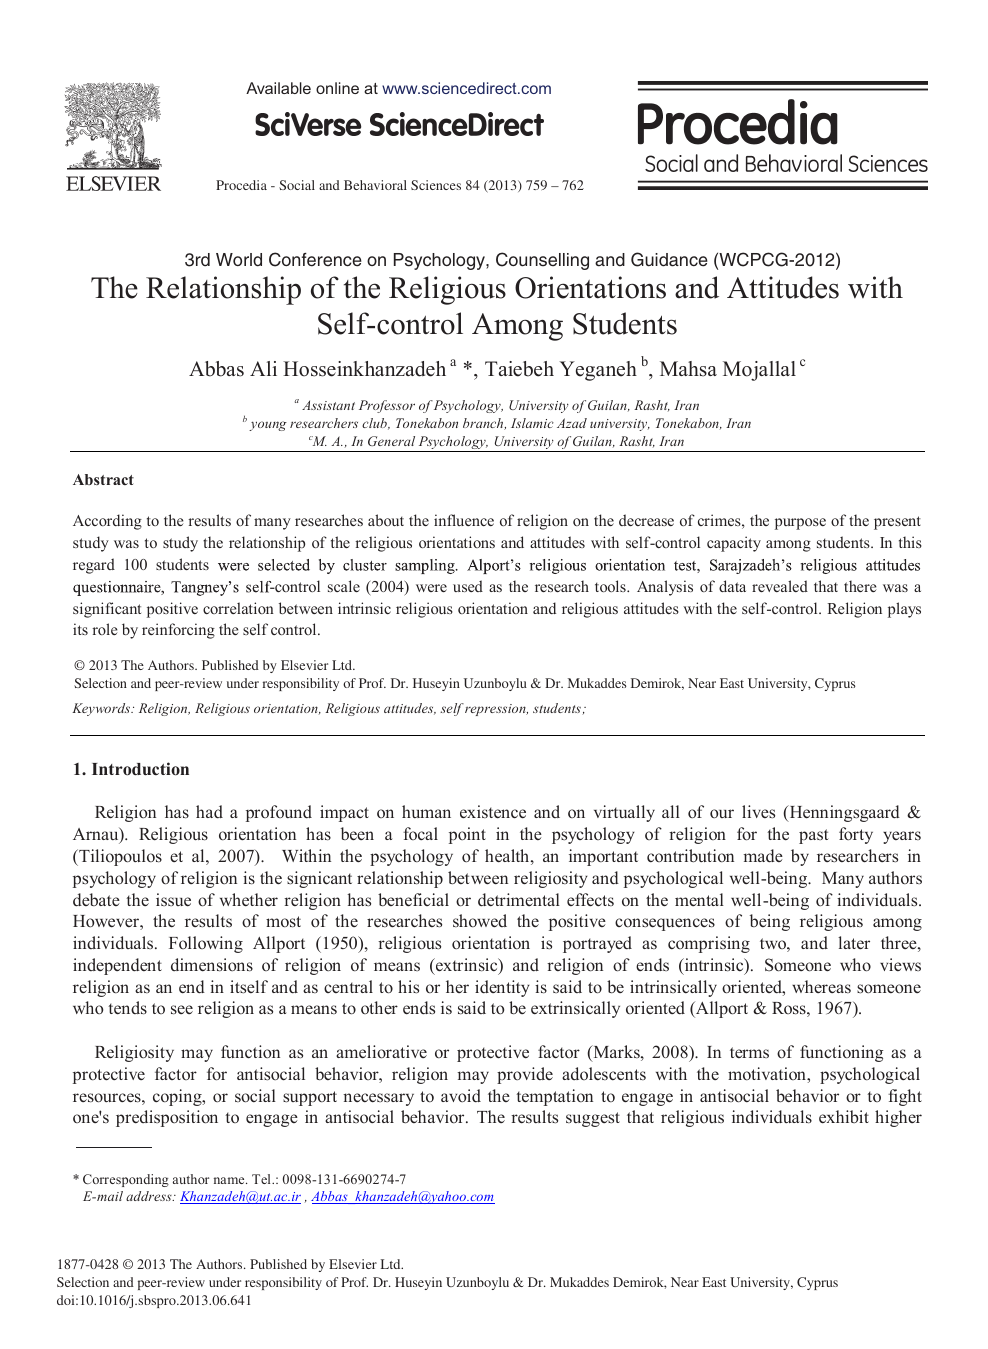 The Relationship of the Religious Orientations and Attitudes with